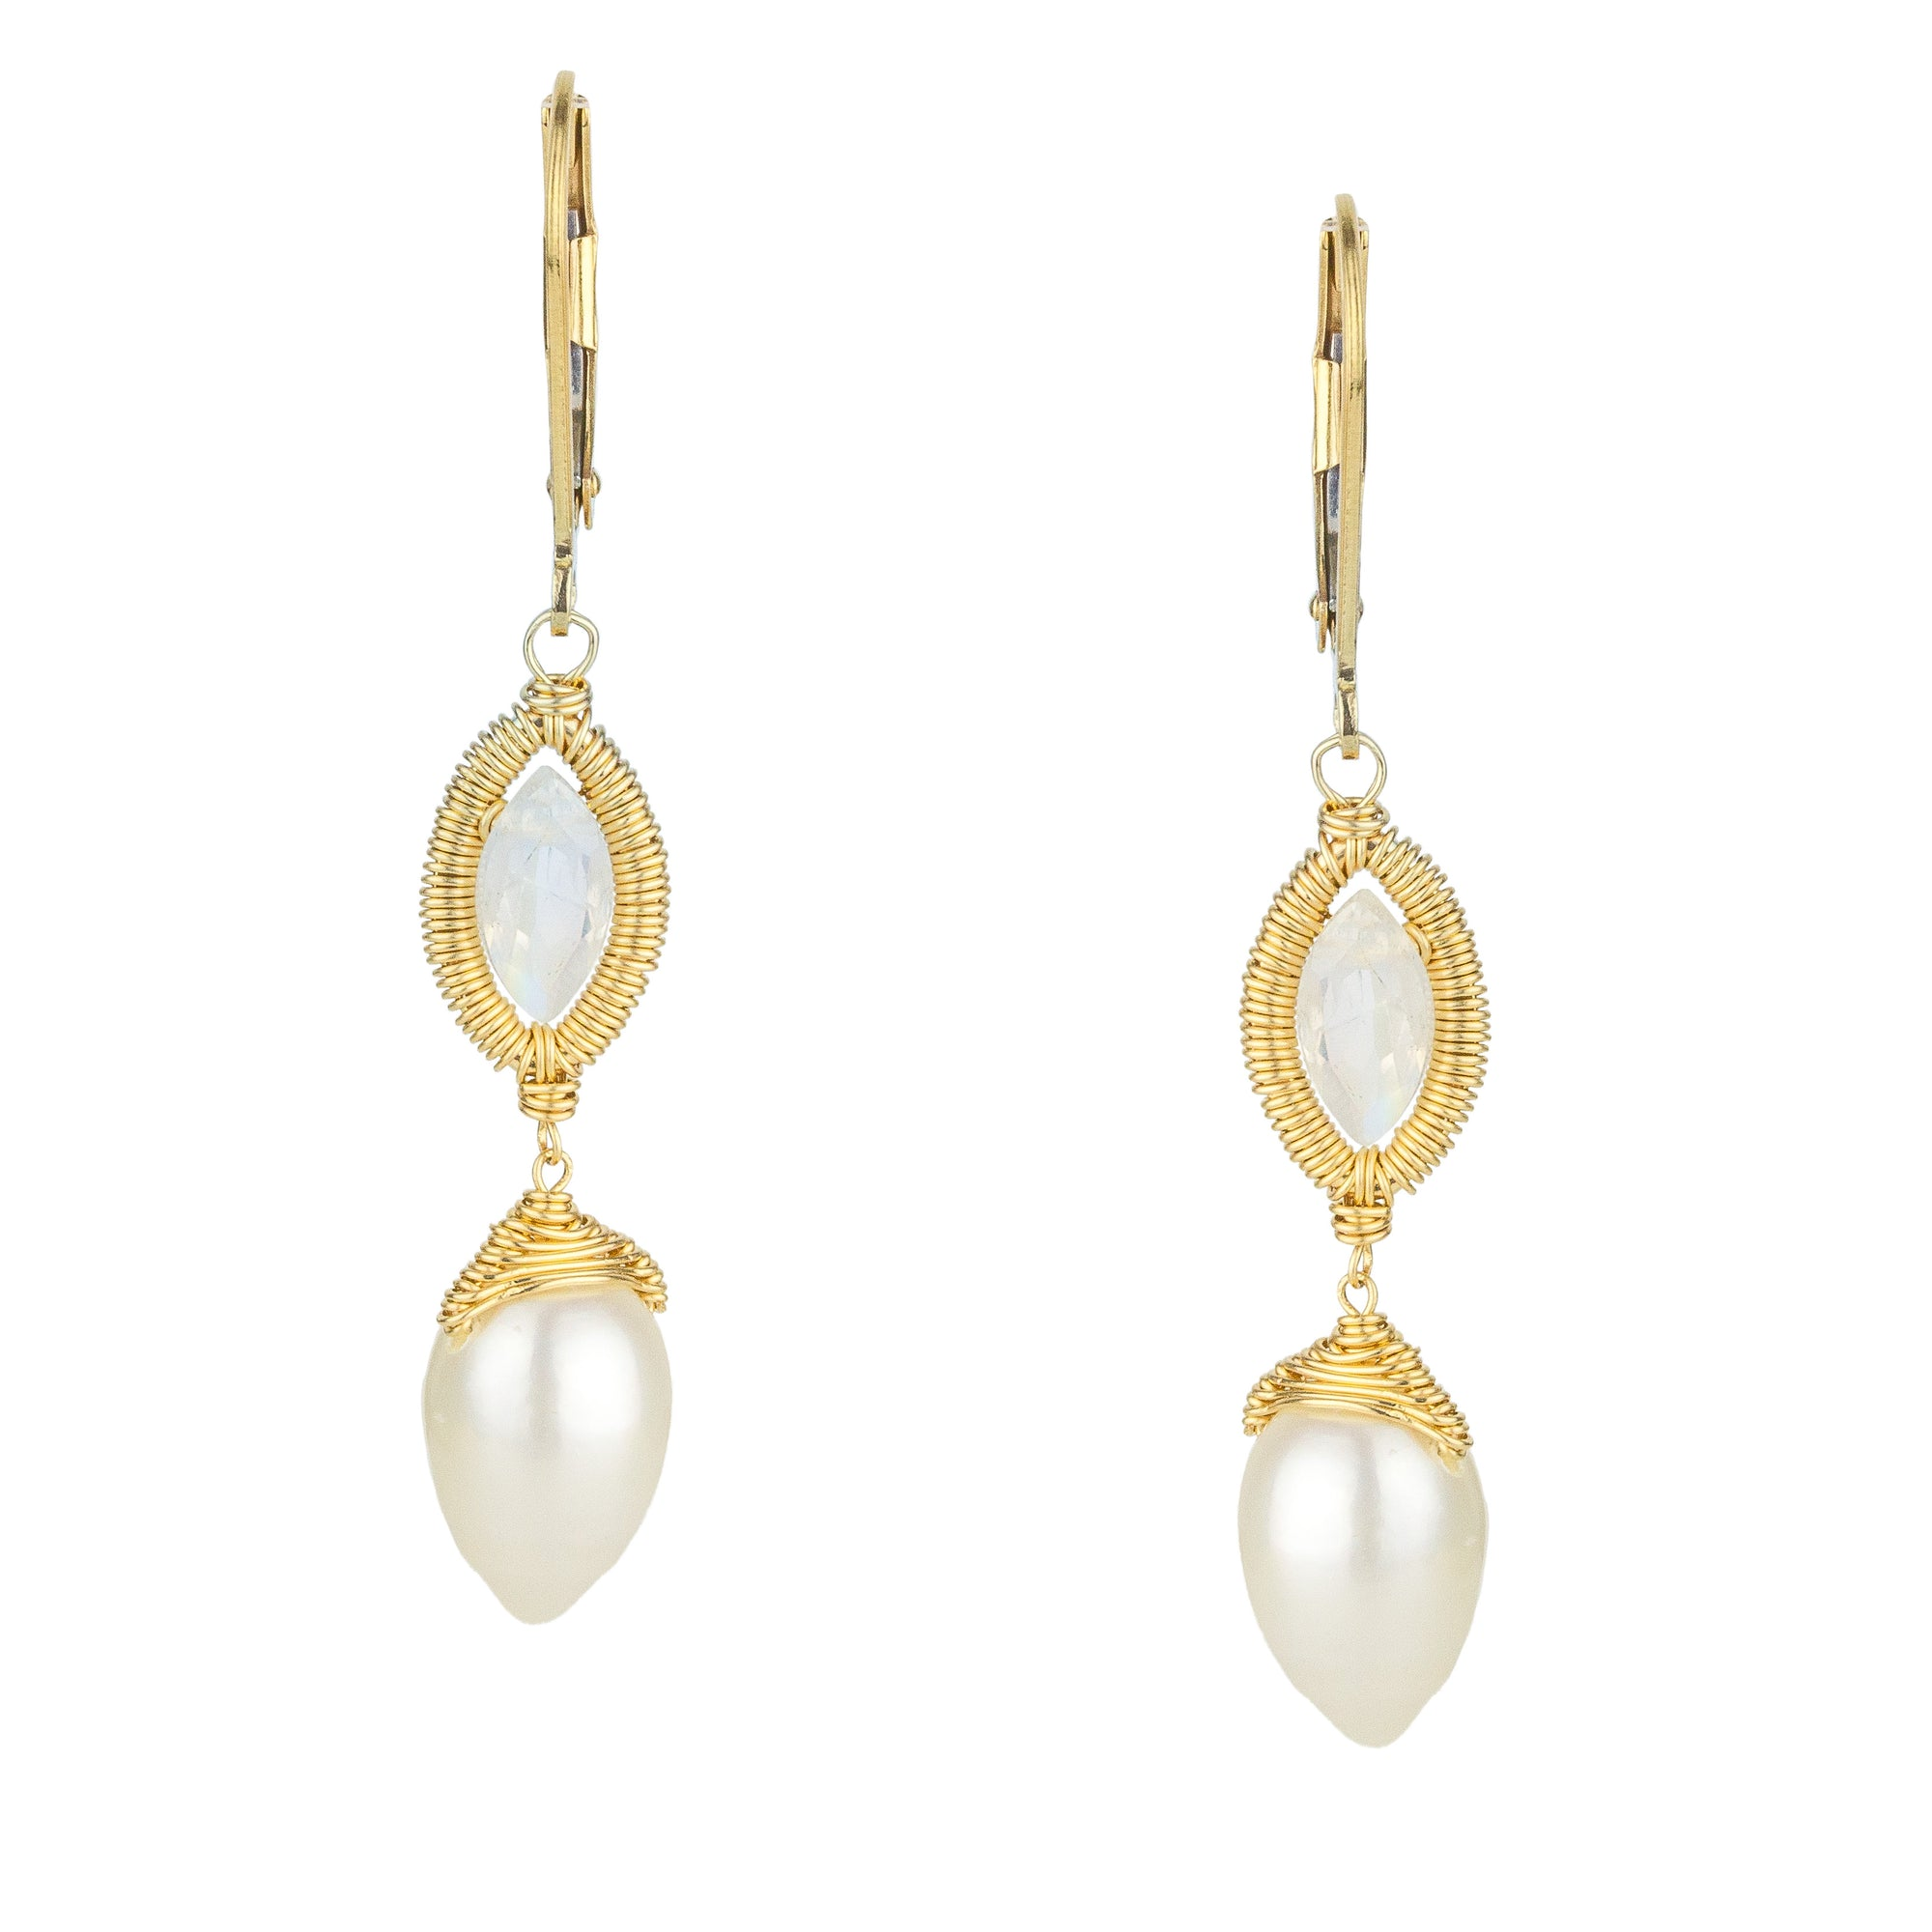 The Wedding Drop Earrings